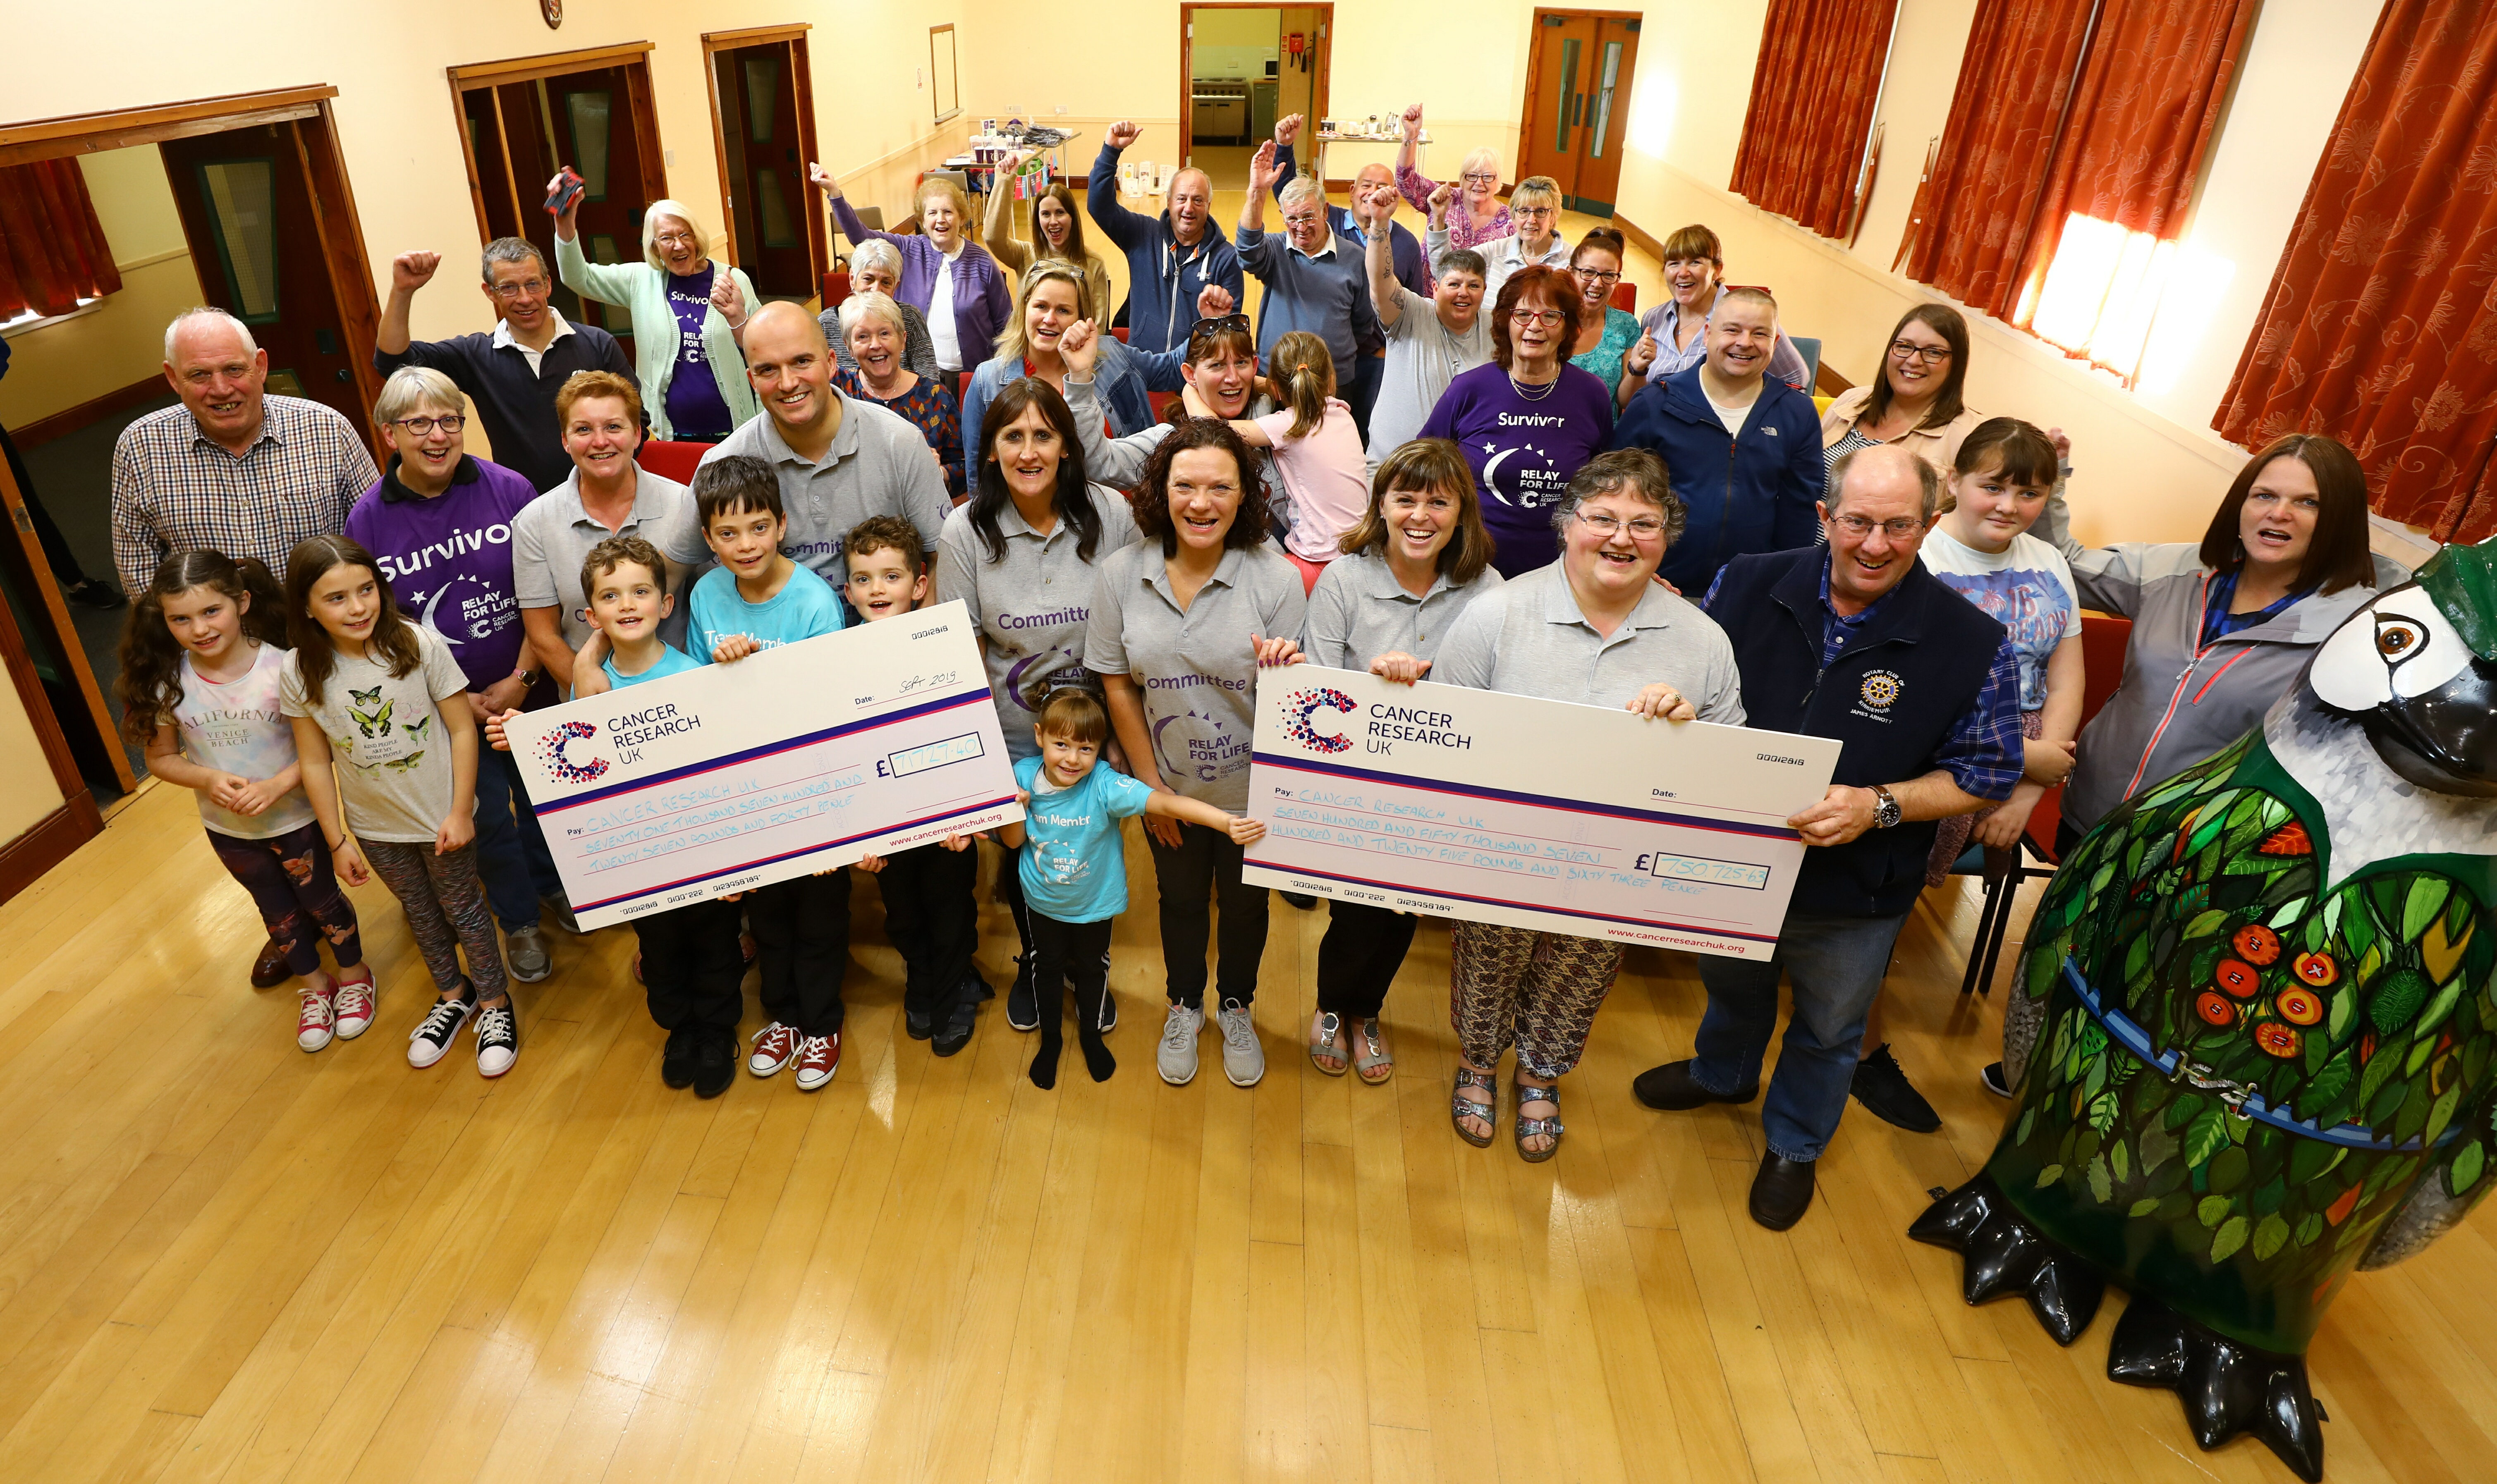 Members of the Kirriemuir CRUK Committee and supporters display the two cheques, one for the amount raised at this years event - £71,727.40, and also the amount raised from the seven Relay For Life events that they have held, totalling £750,725.63.